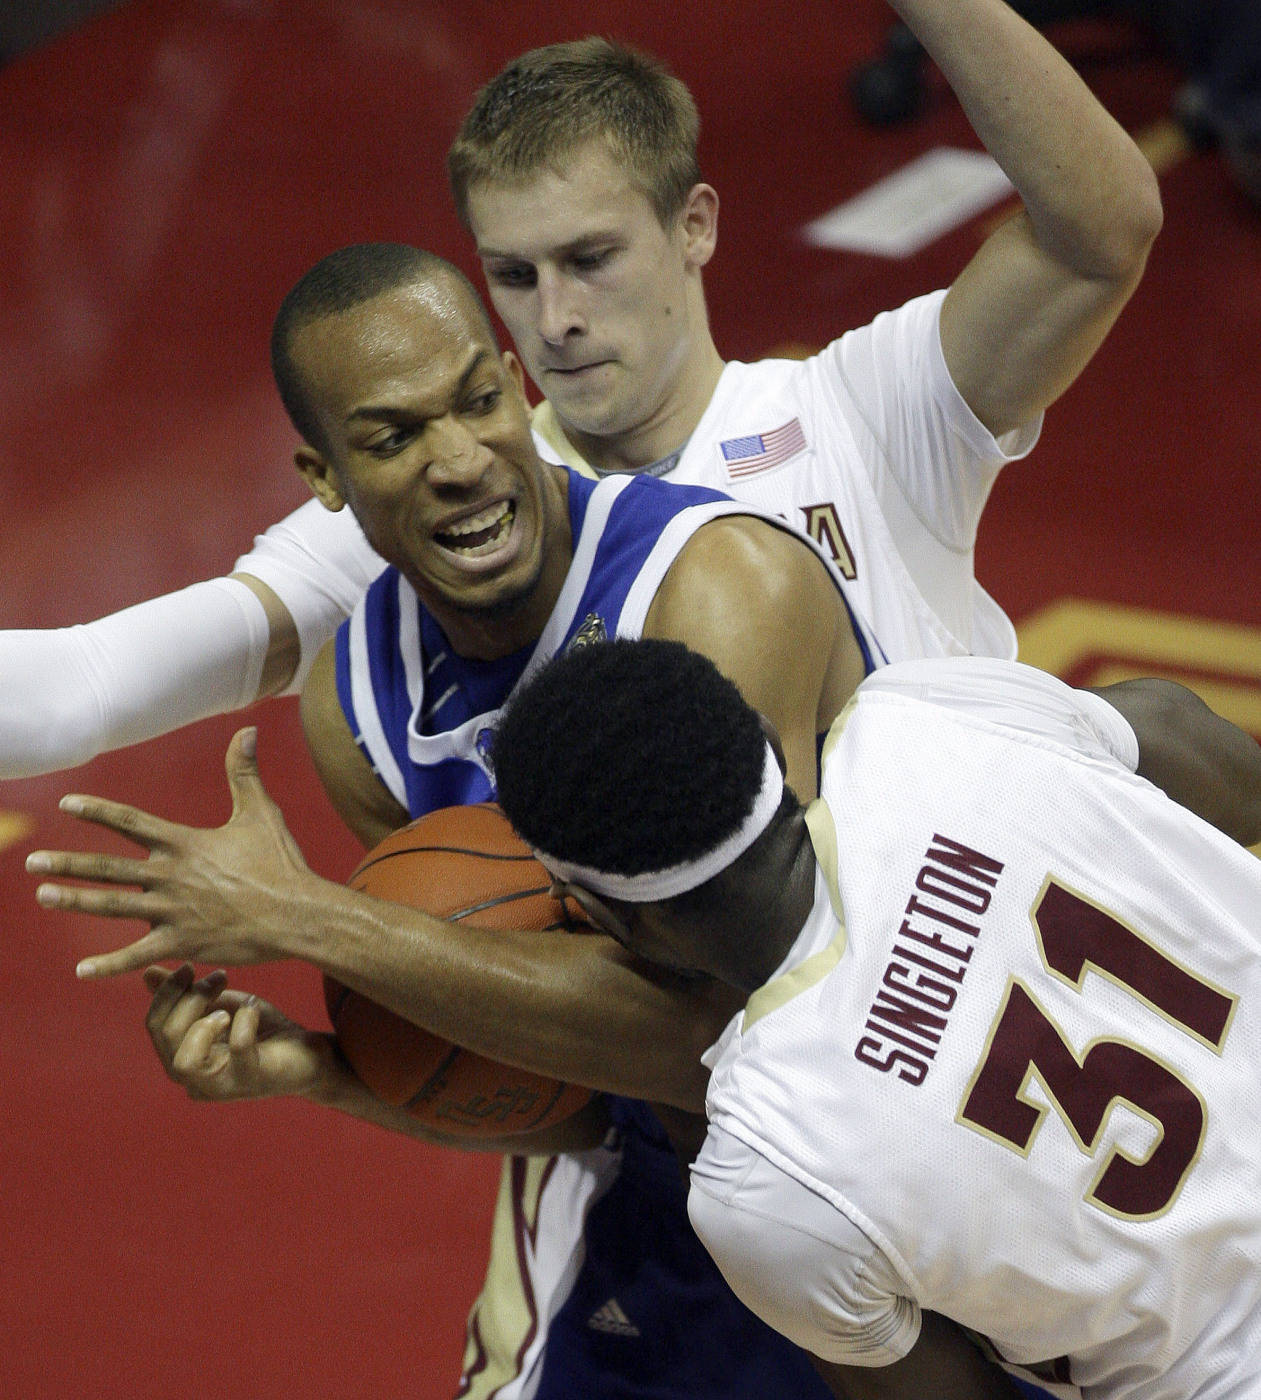 Georgia State's Kevin Lott, center, is double-teamed by Florida State's Chris Singleton, right, and Deividas Dulkys during the first half of an NCAA college basketball game, on Tuesday, Dec. 15, 2009, in Tallahassee, Fla.(AP Photo/Phil coale)